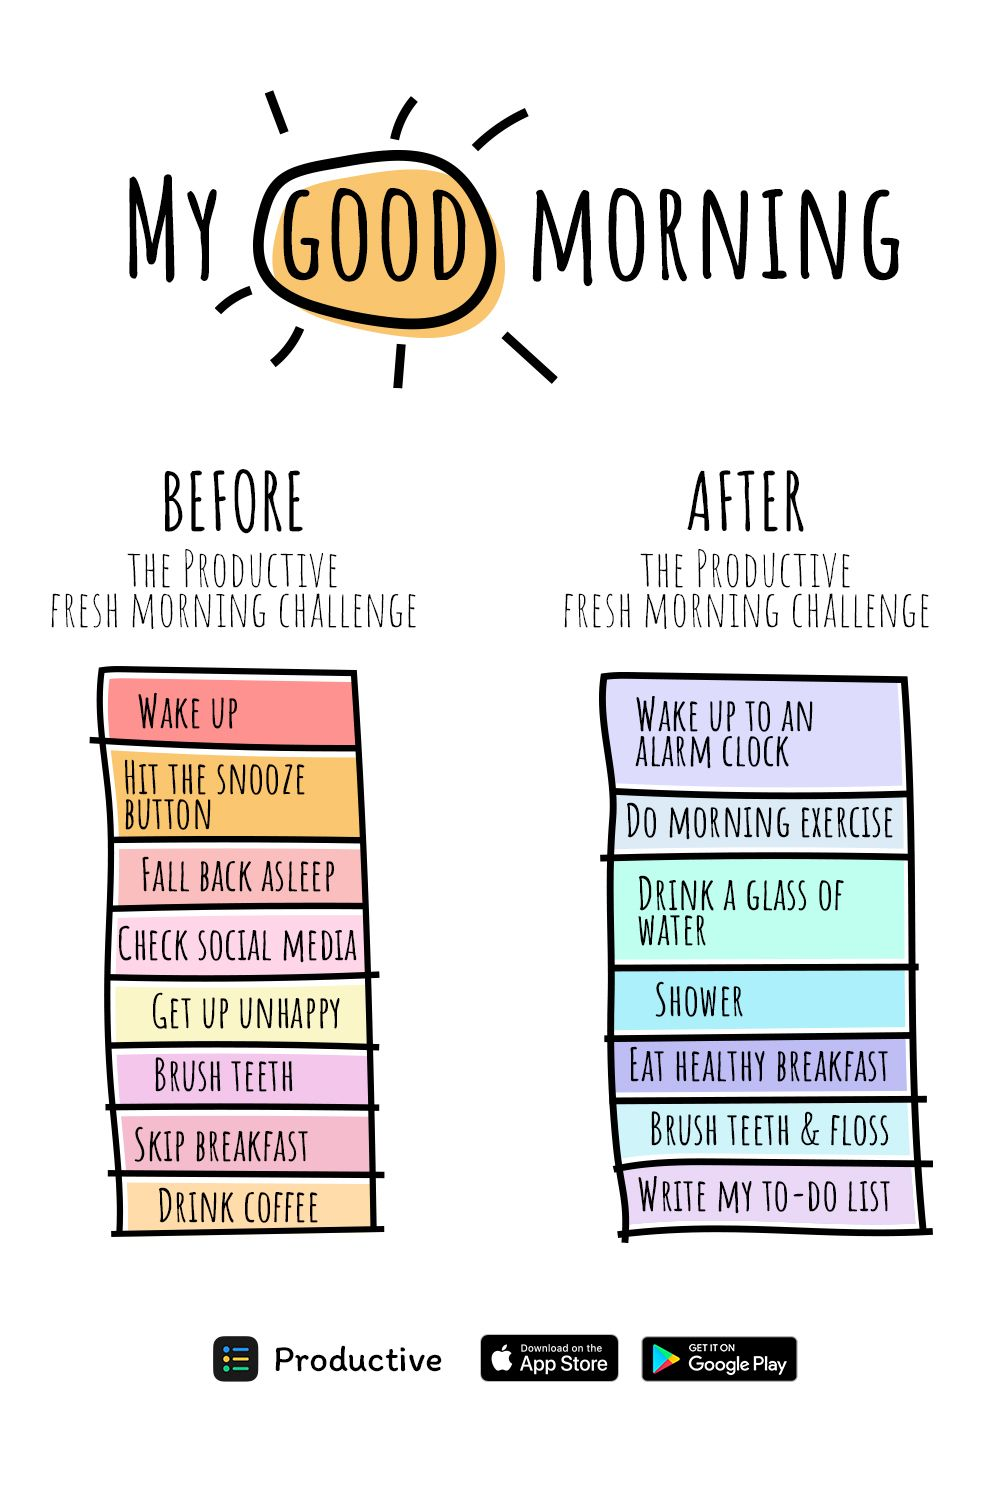 Join The Productive Fresh Morning Challenge In 2021 Positive Self Affirmations Self Care Activities Self Improvement Tips